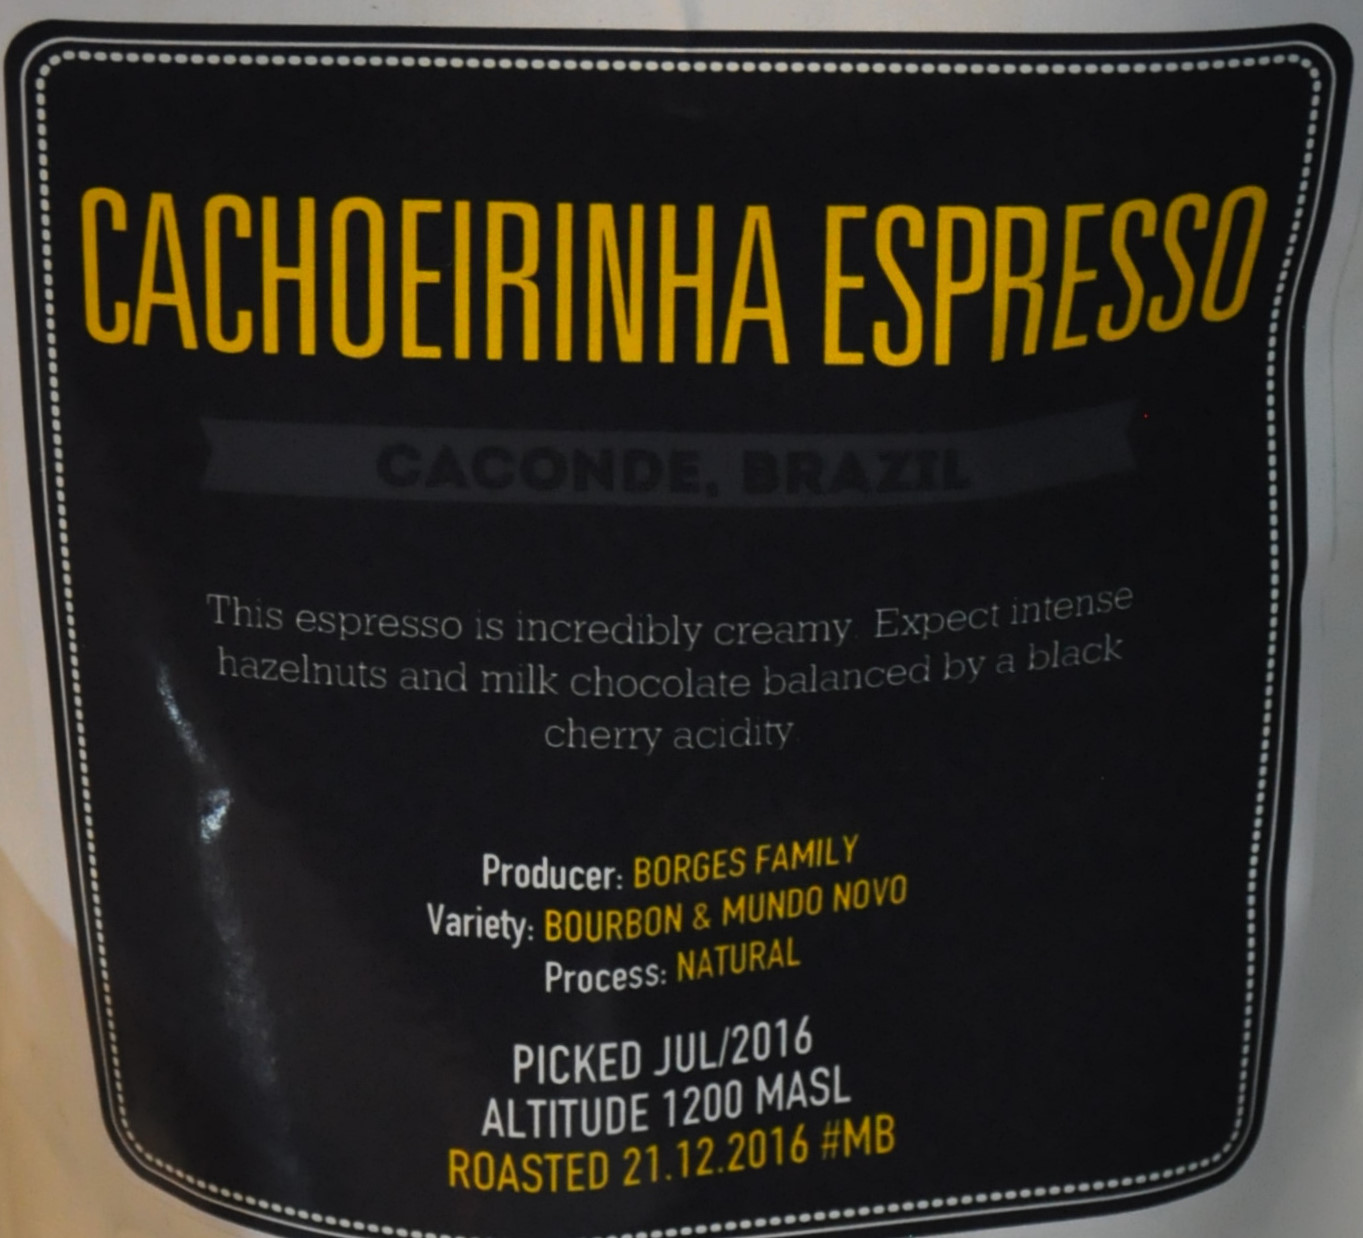 A bag of Cachoeirinha Espresso, roasted by Notes and in the hopper at Flat Cap Borough during my visit in January 2017.